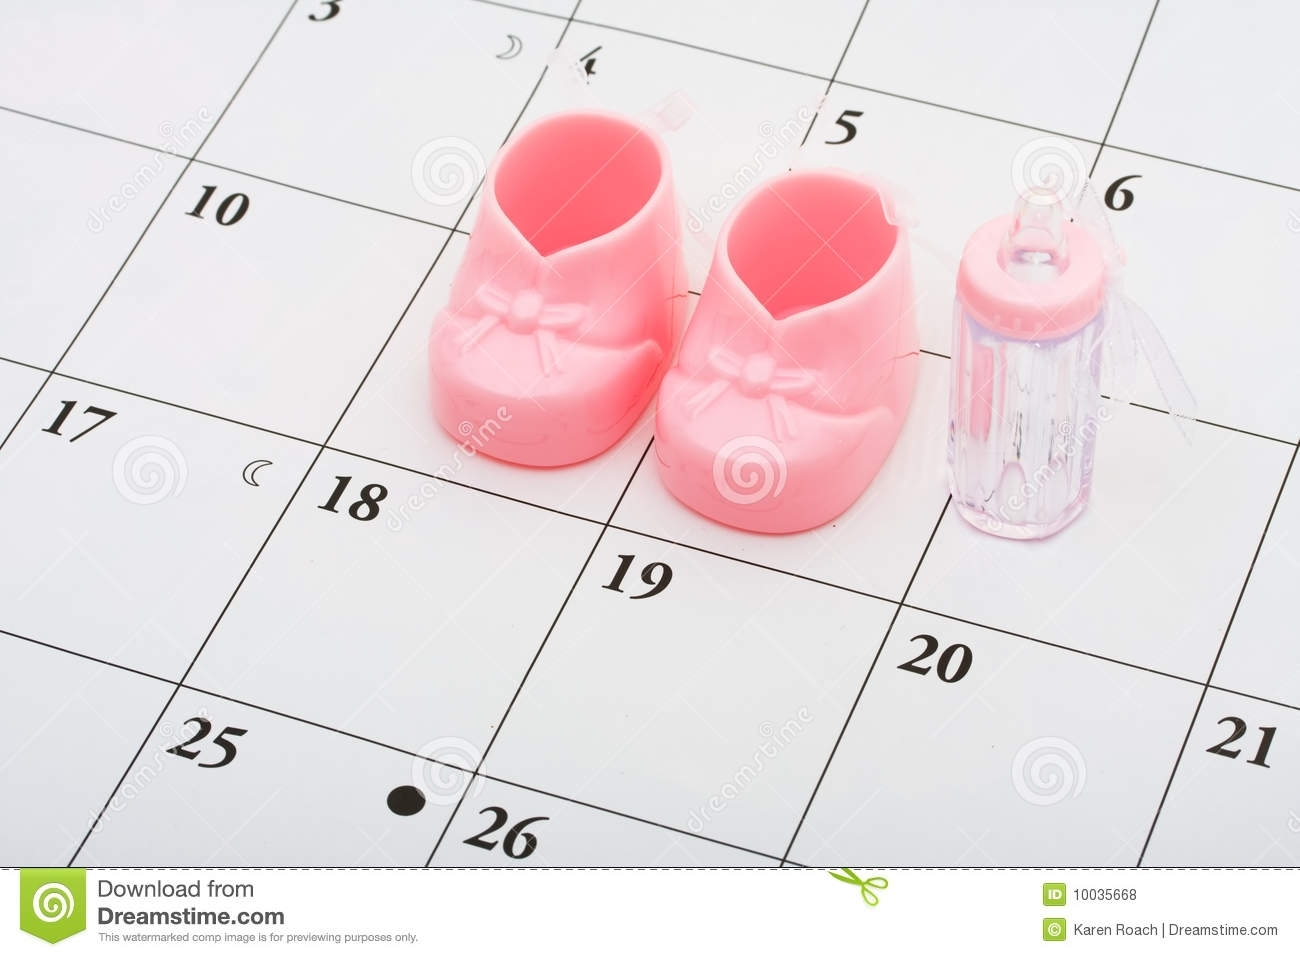 574 Baby Due Date Photos - Free & Royalty-Free Stock Photos